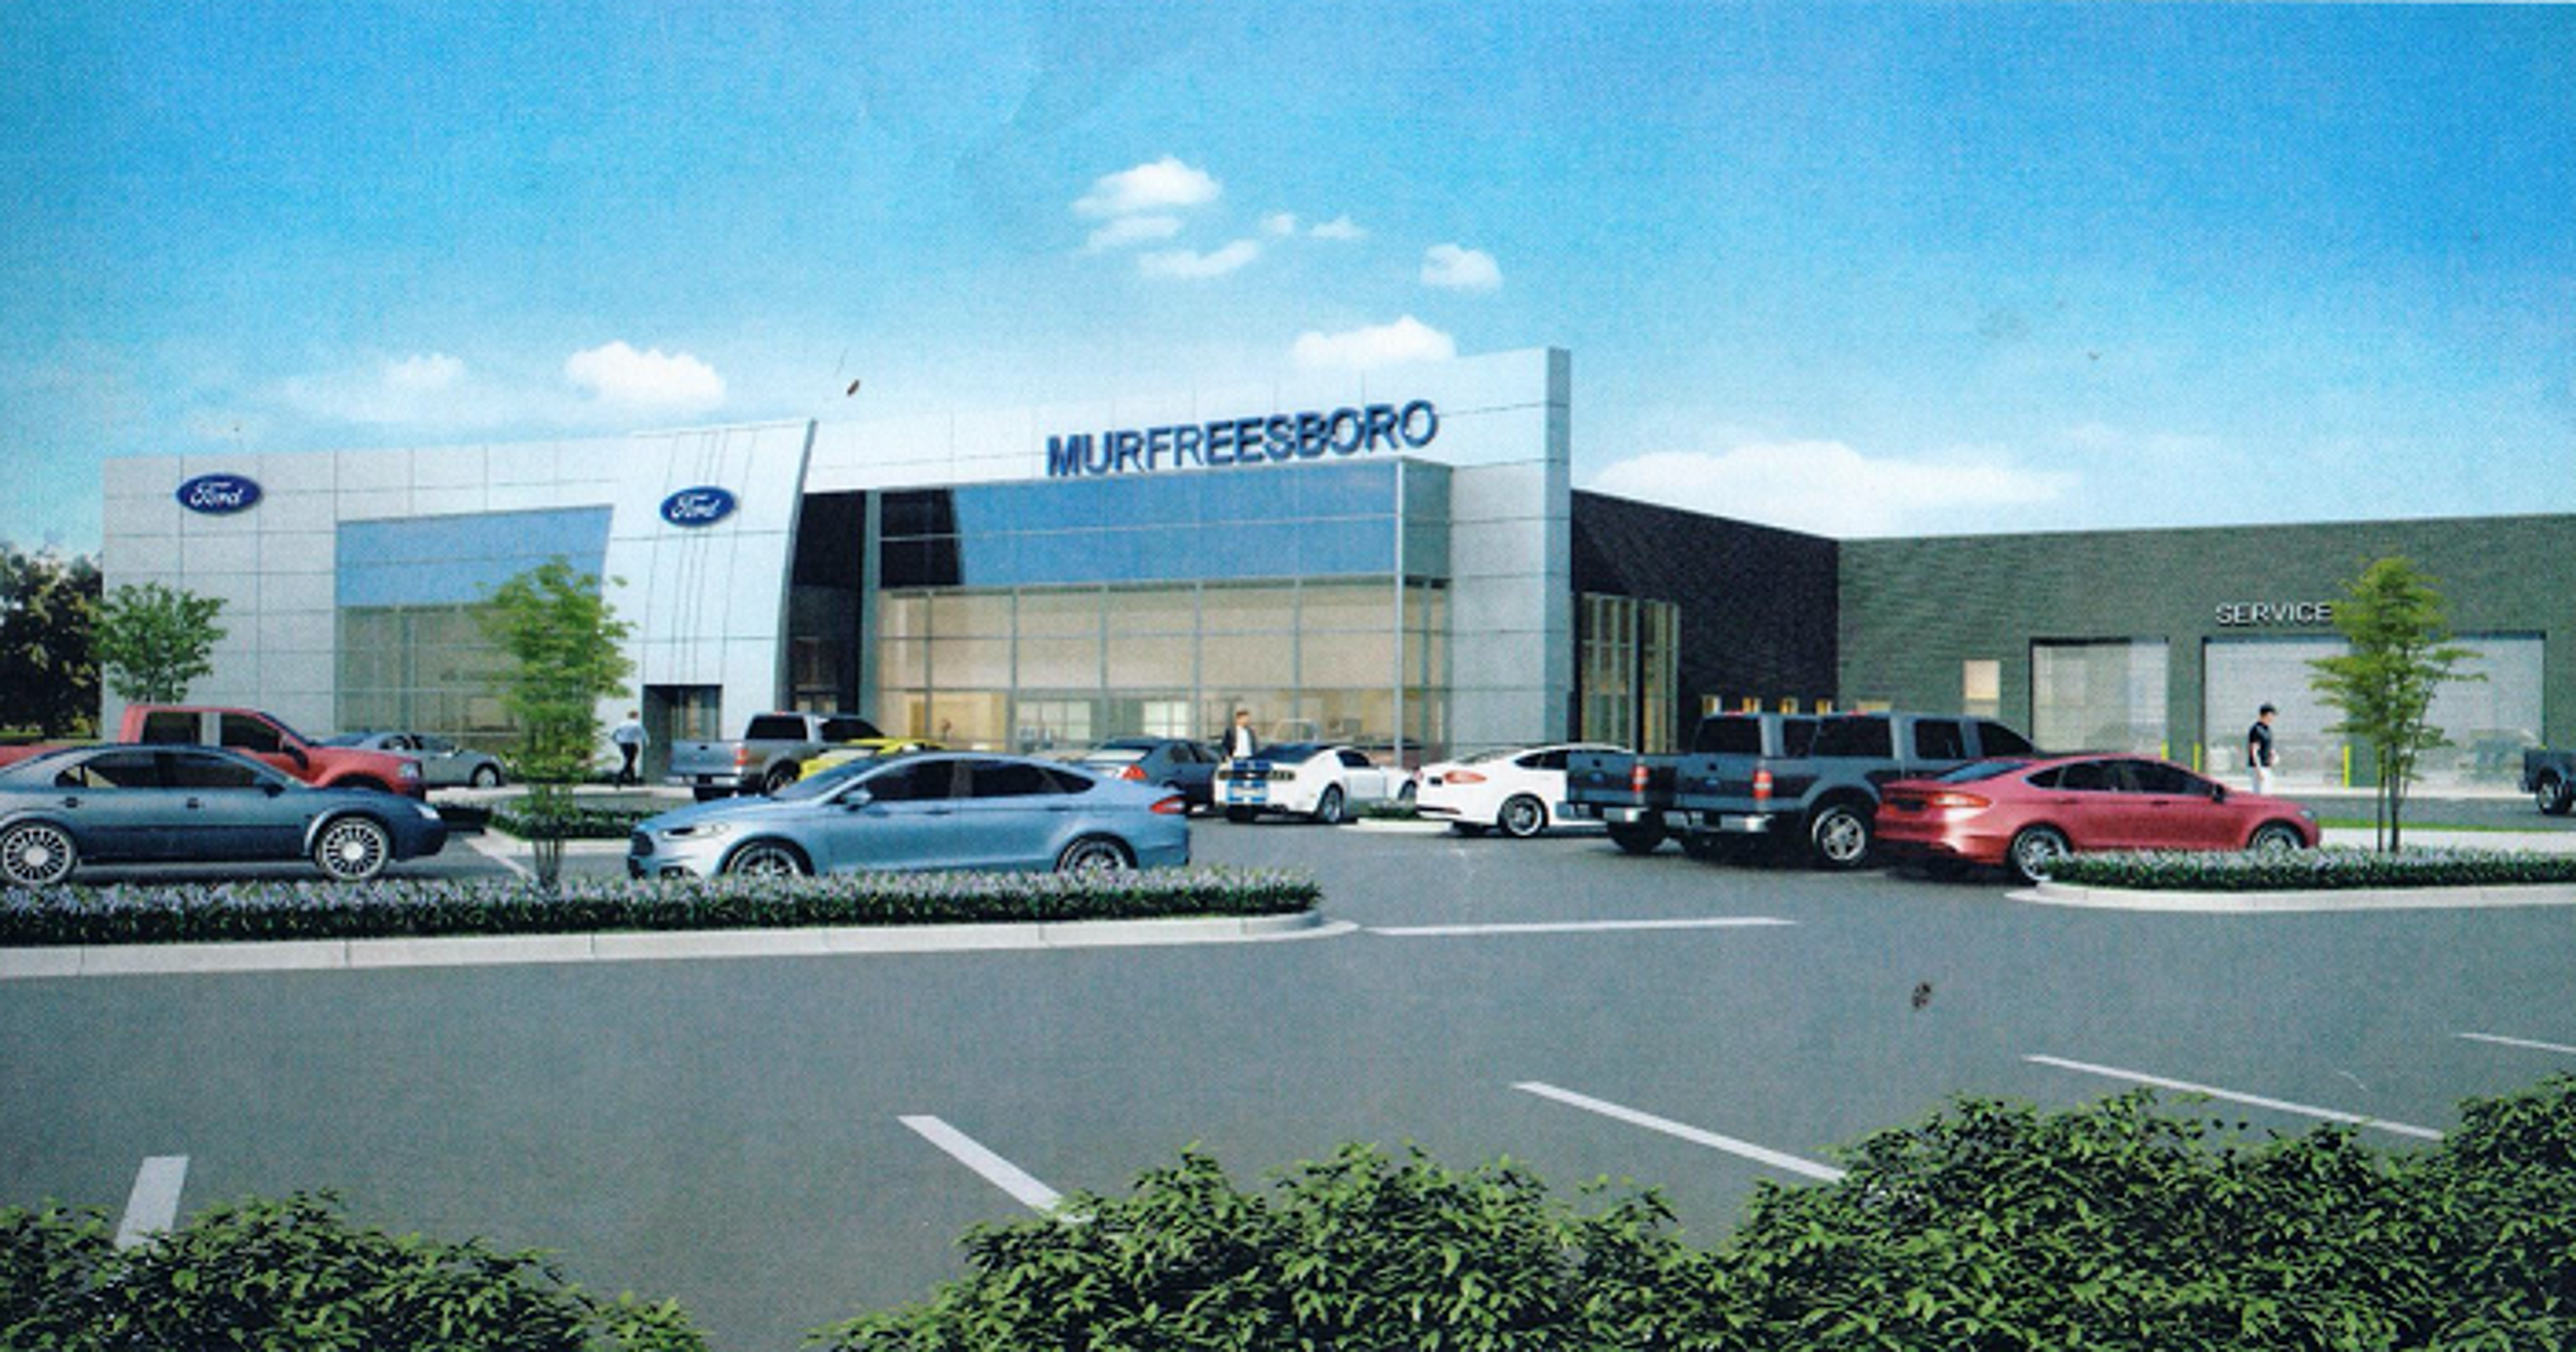 Ford Of Murfreesboro >> Ford Of Murfreesboro Breaks Ground On New Facility